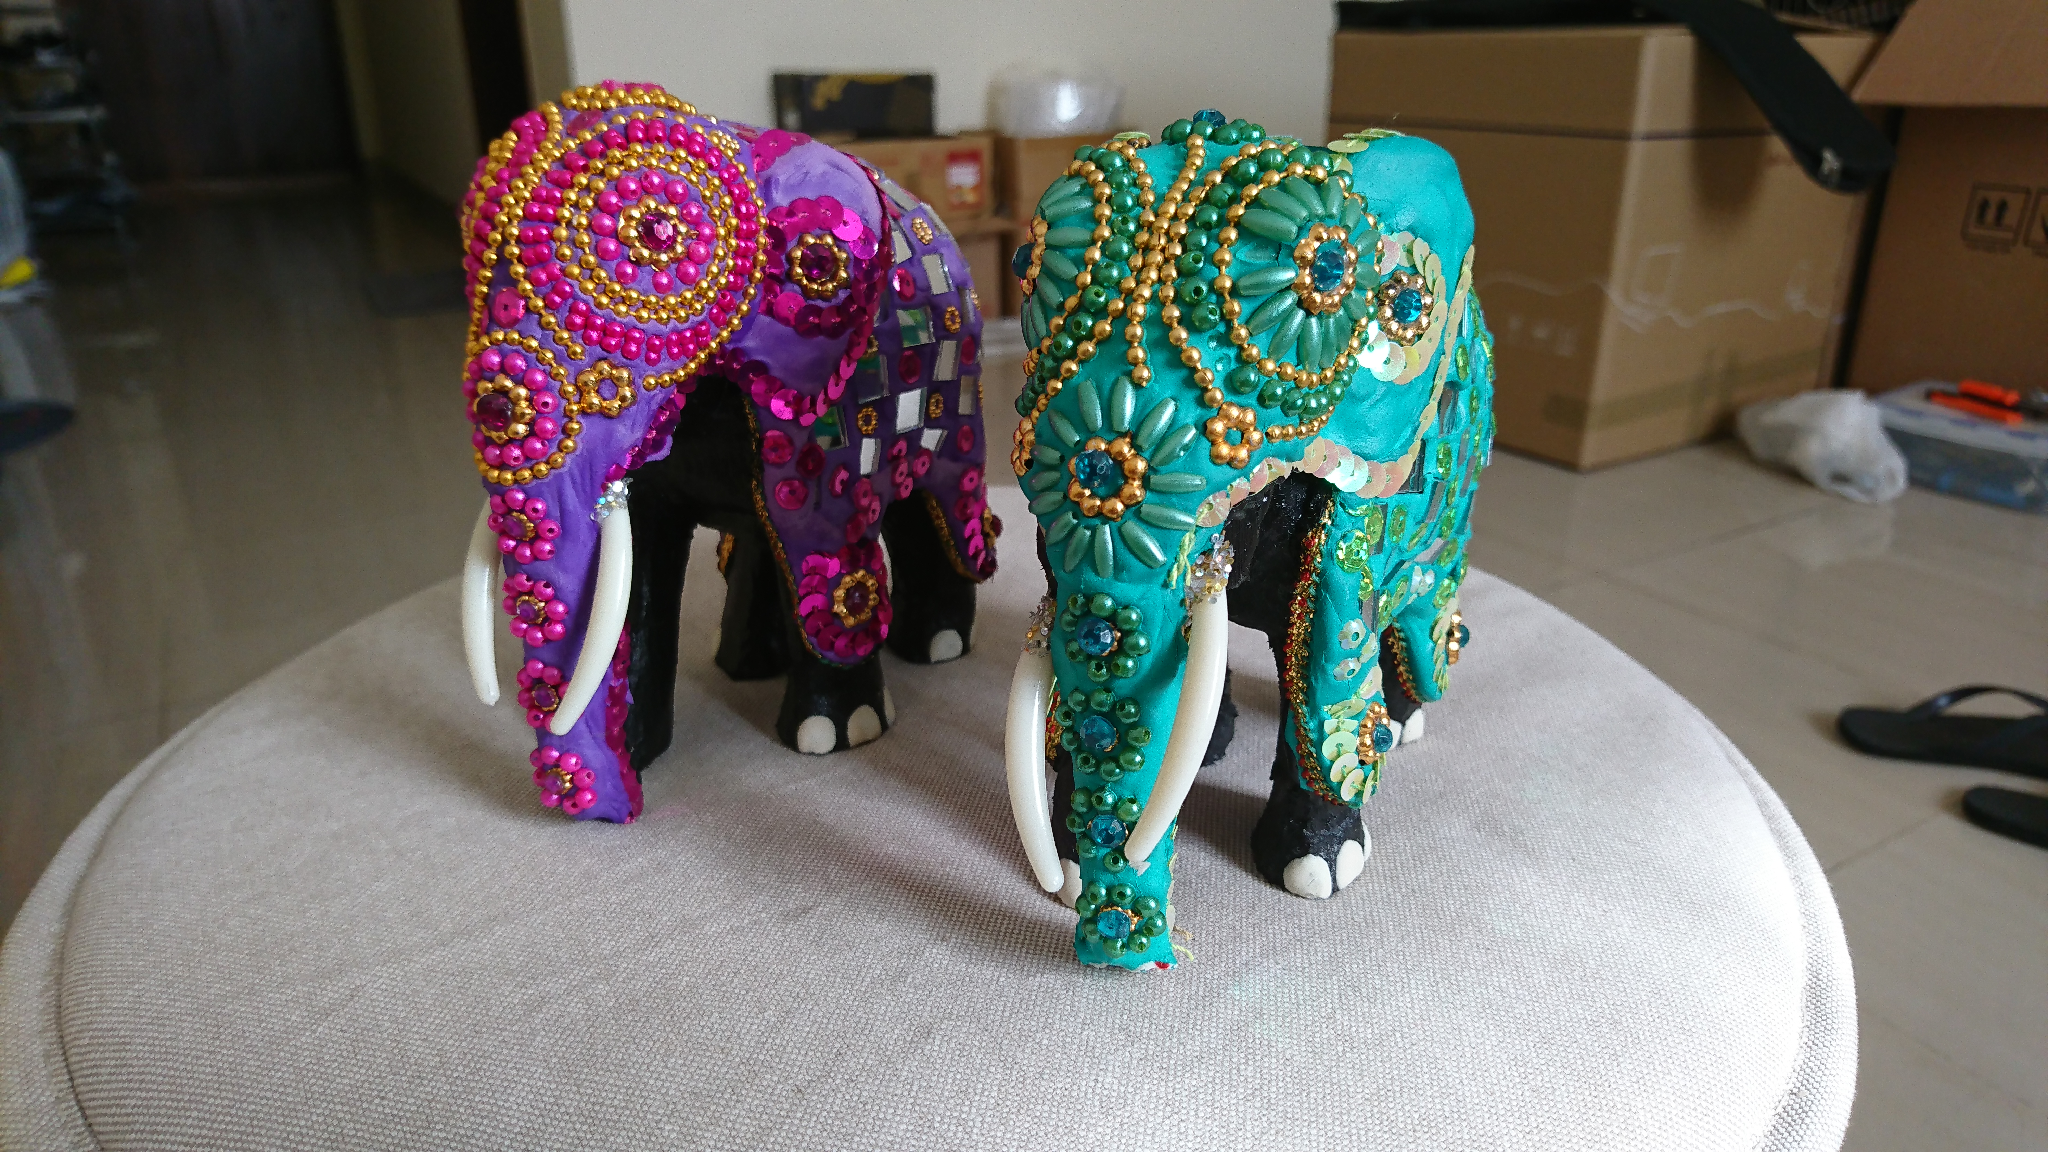 2 Decorated Elephant Ornaments with boxes